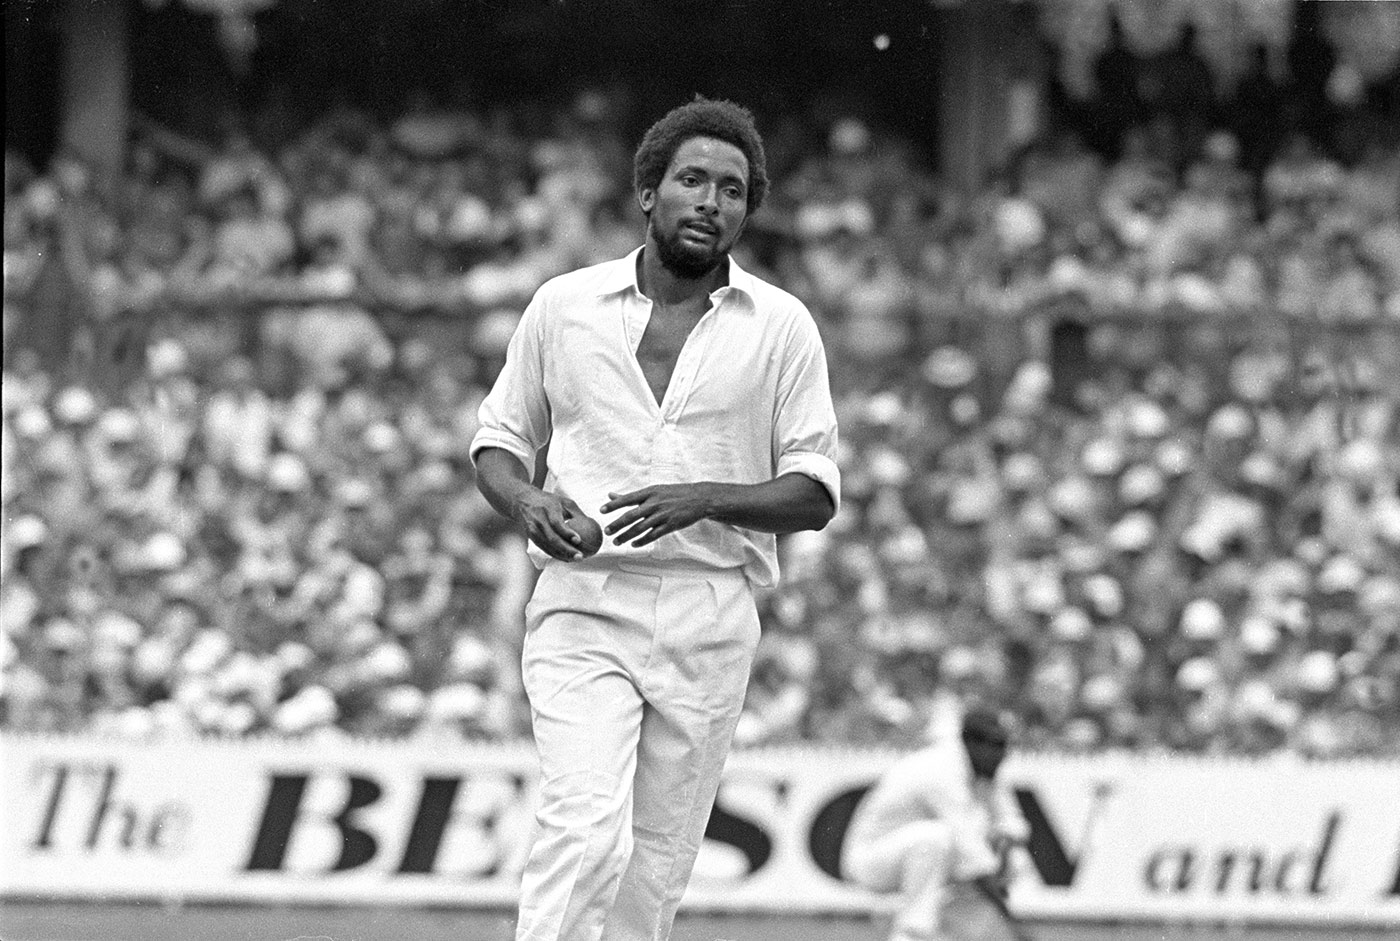 Andy Roberts fastest bowler in the world KreedOn